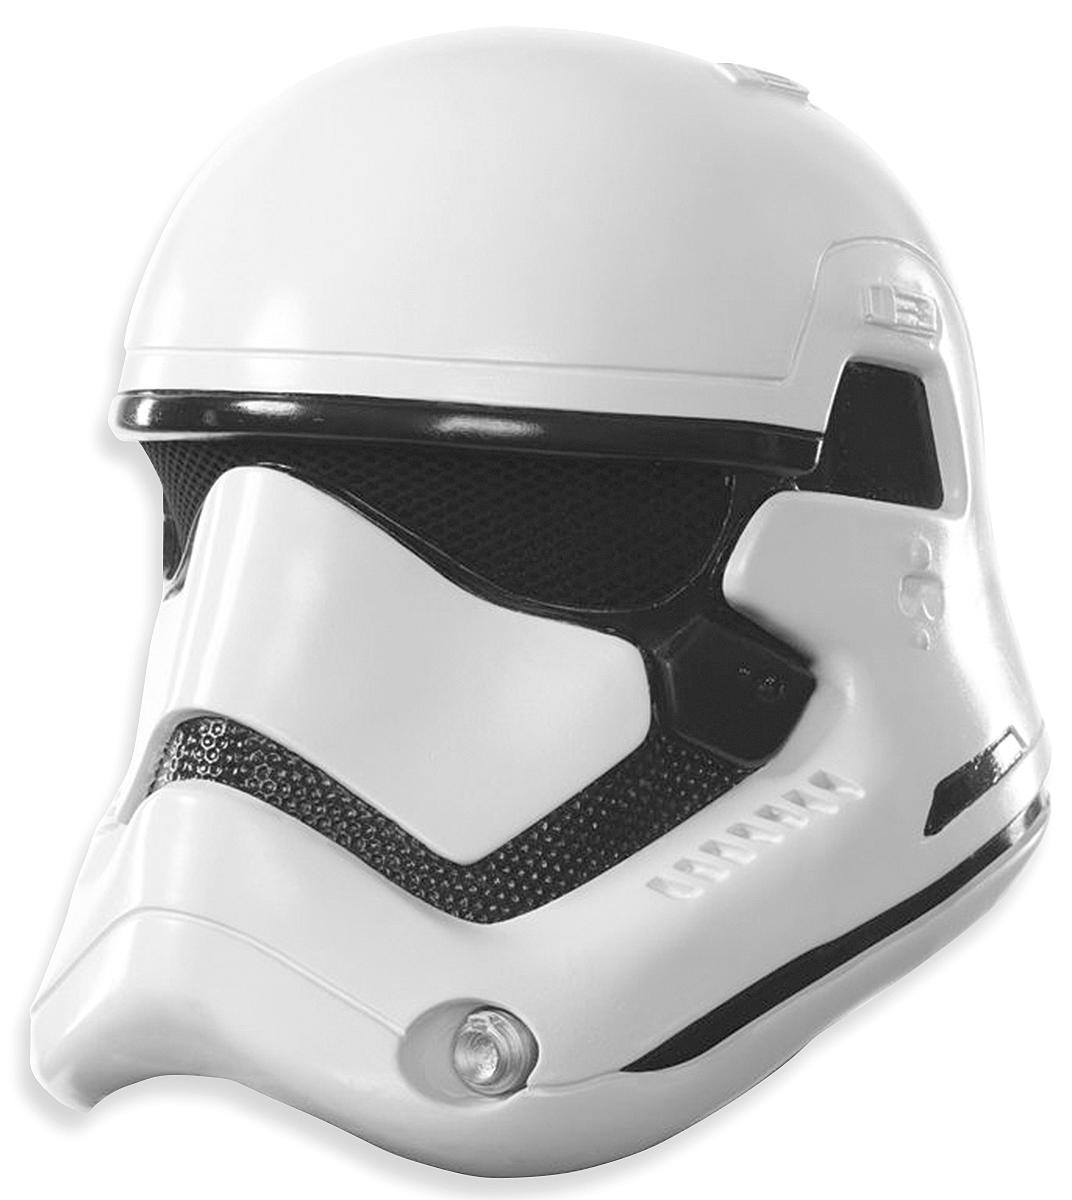 Star Wars Küchenhelfer Star Wars Episode 7 Deluxe Maske Stormtrooper